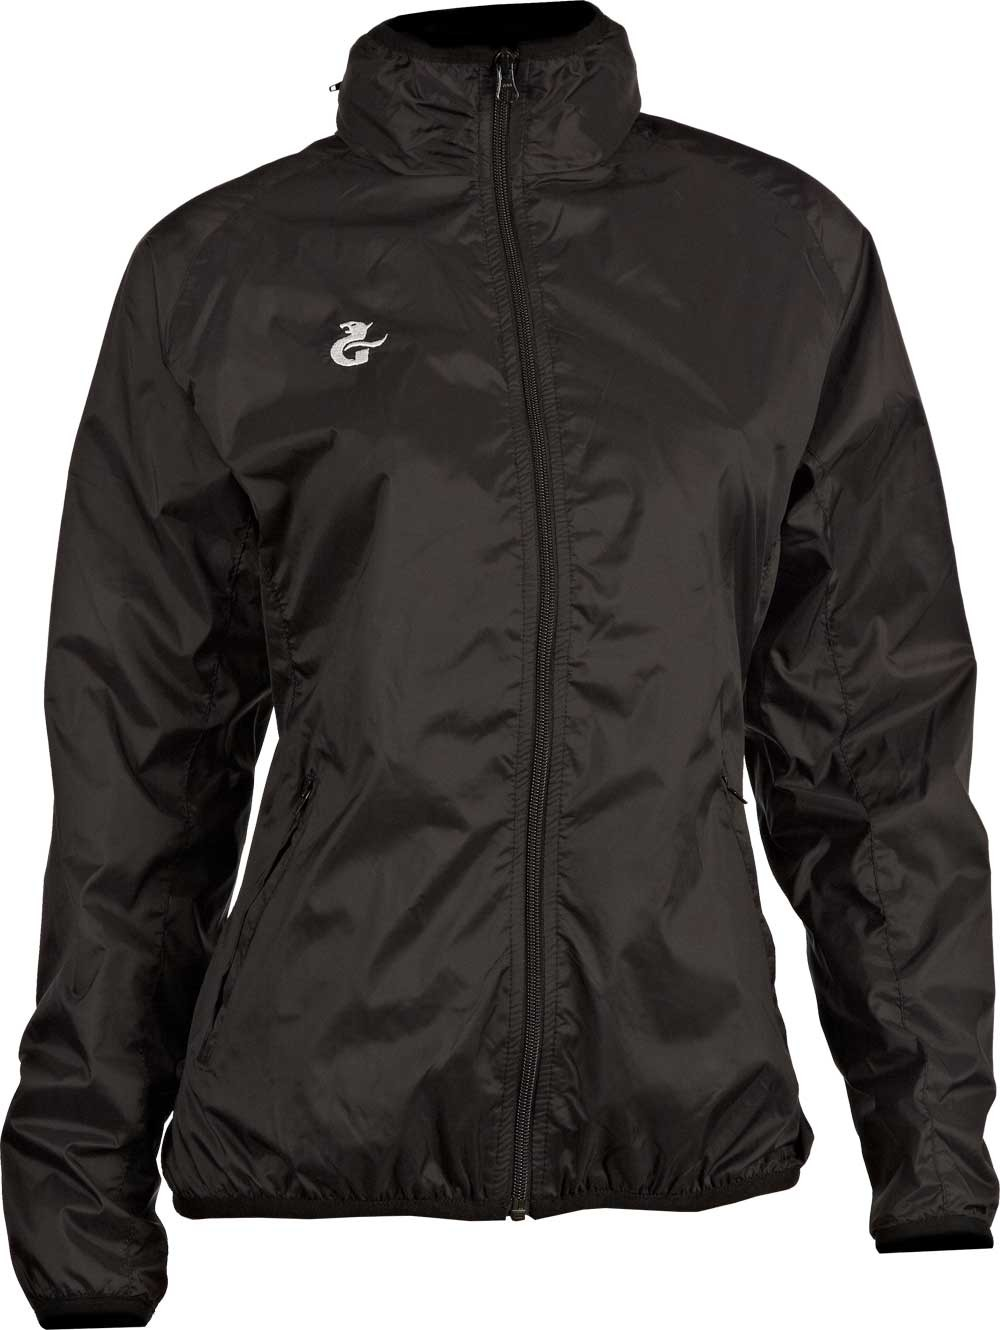 Gryphon Womens Essential Rain Jacket